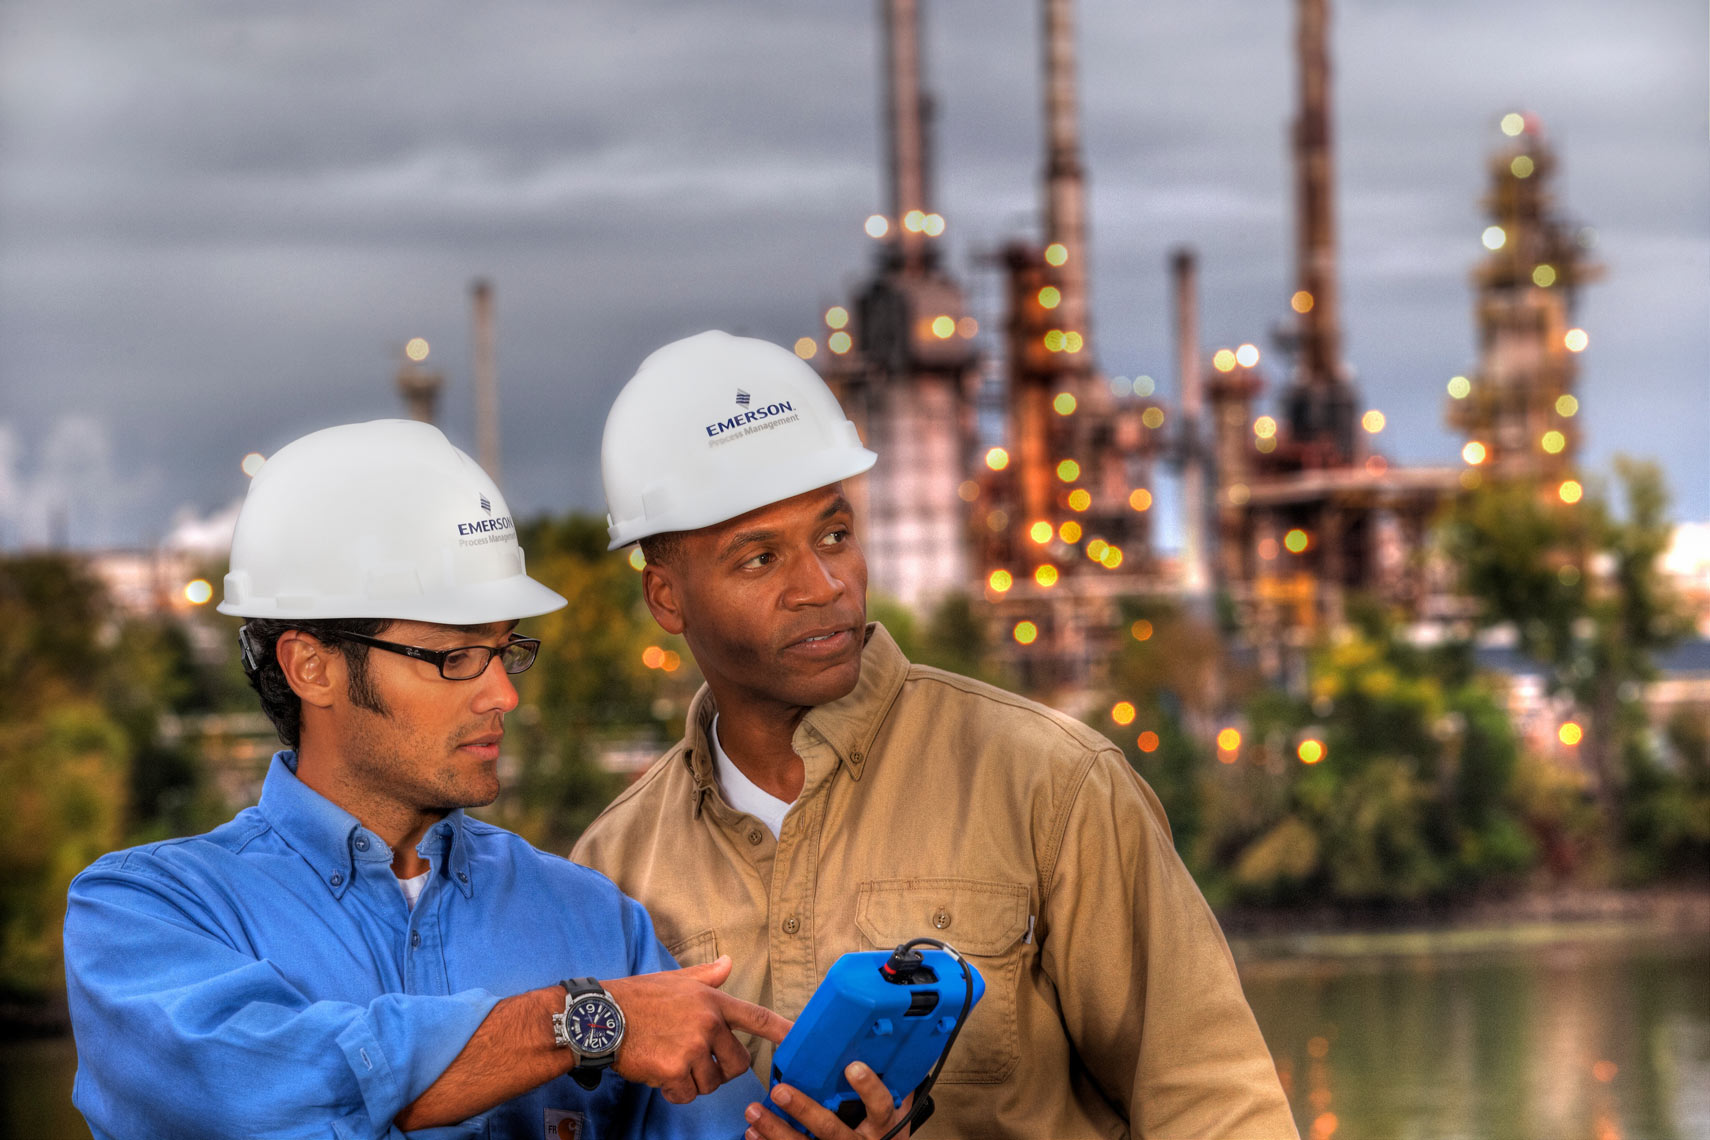 Oil Refinery/Two men talking/twighlight shot/Industrial photo